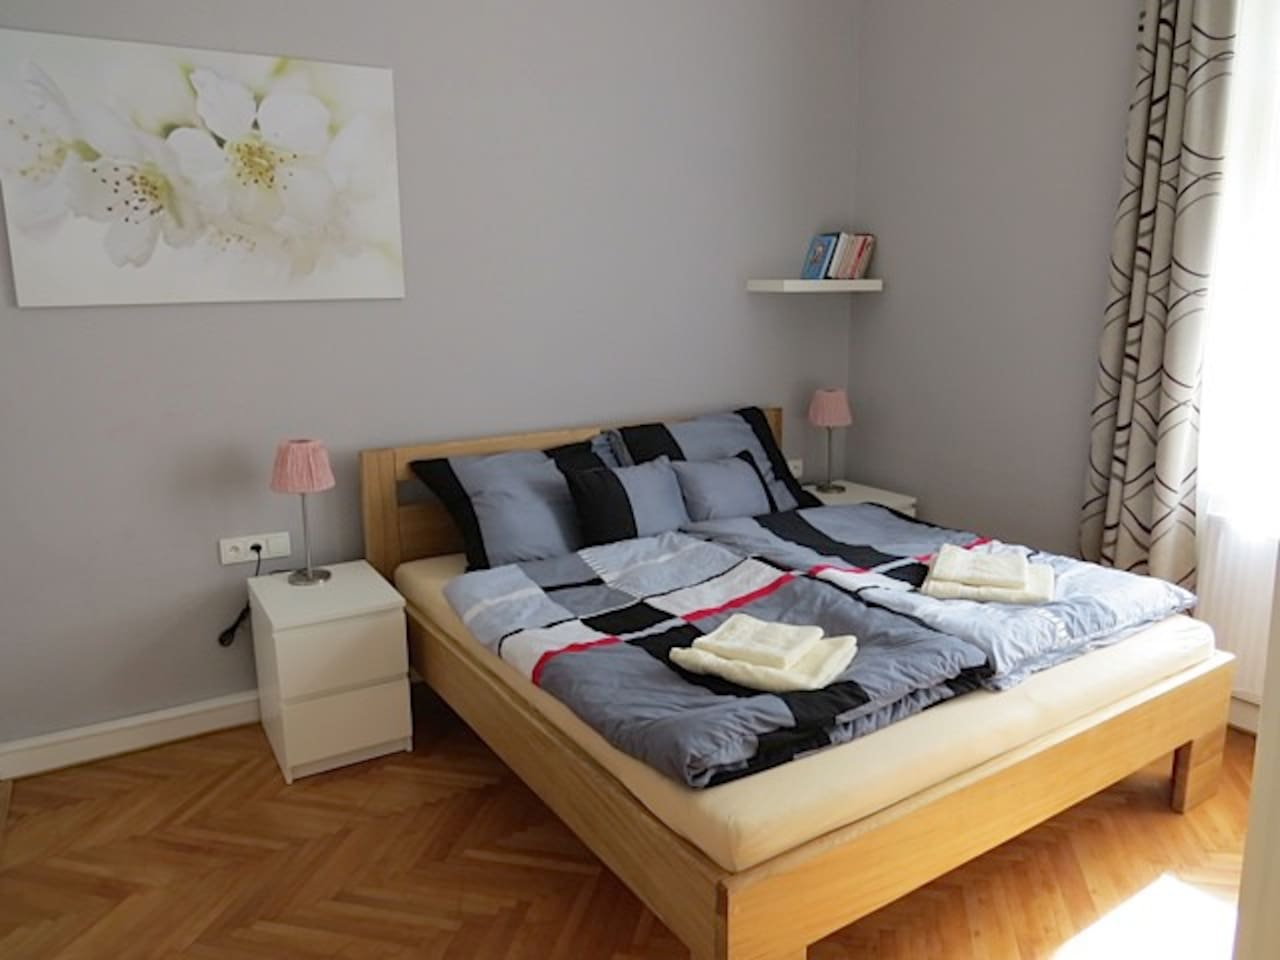 Massive king size bed with good quality of mattresses